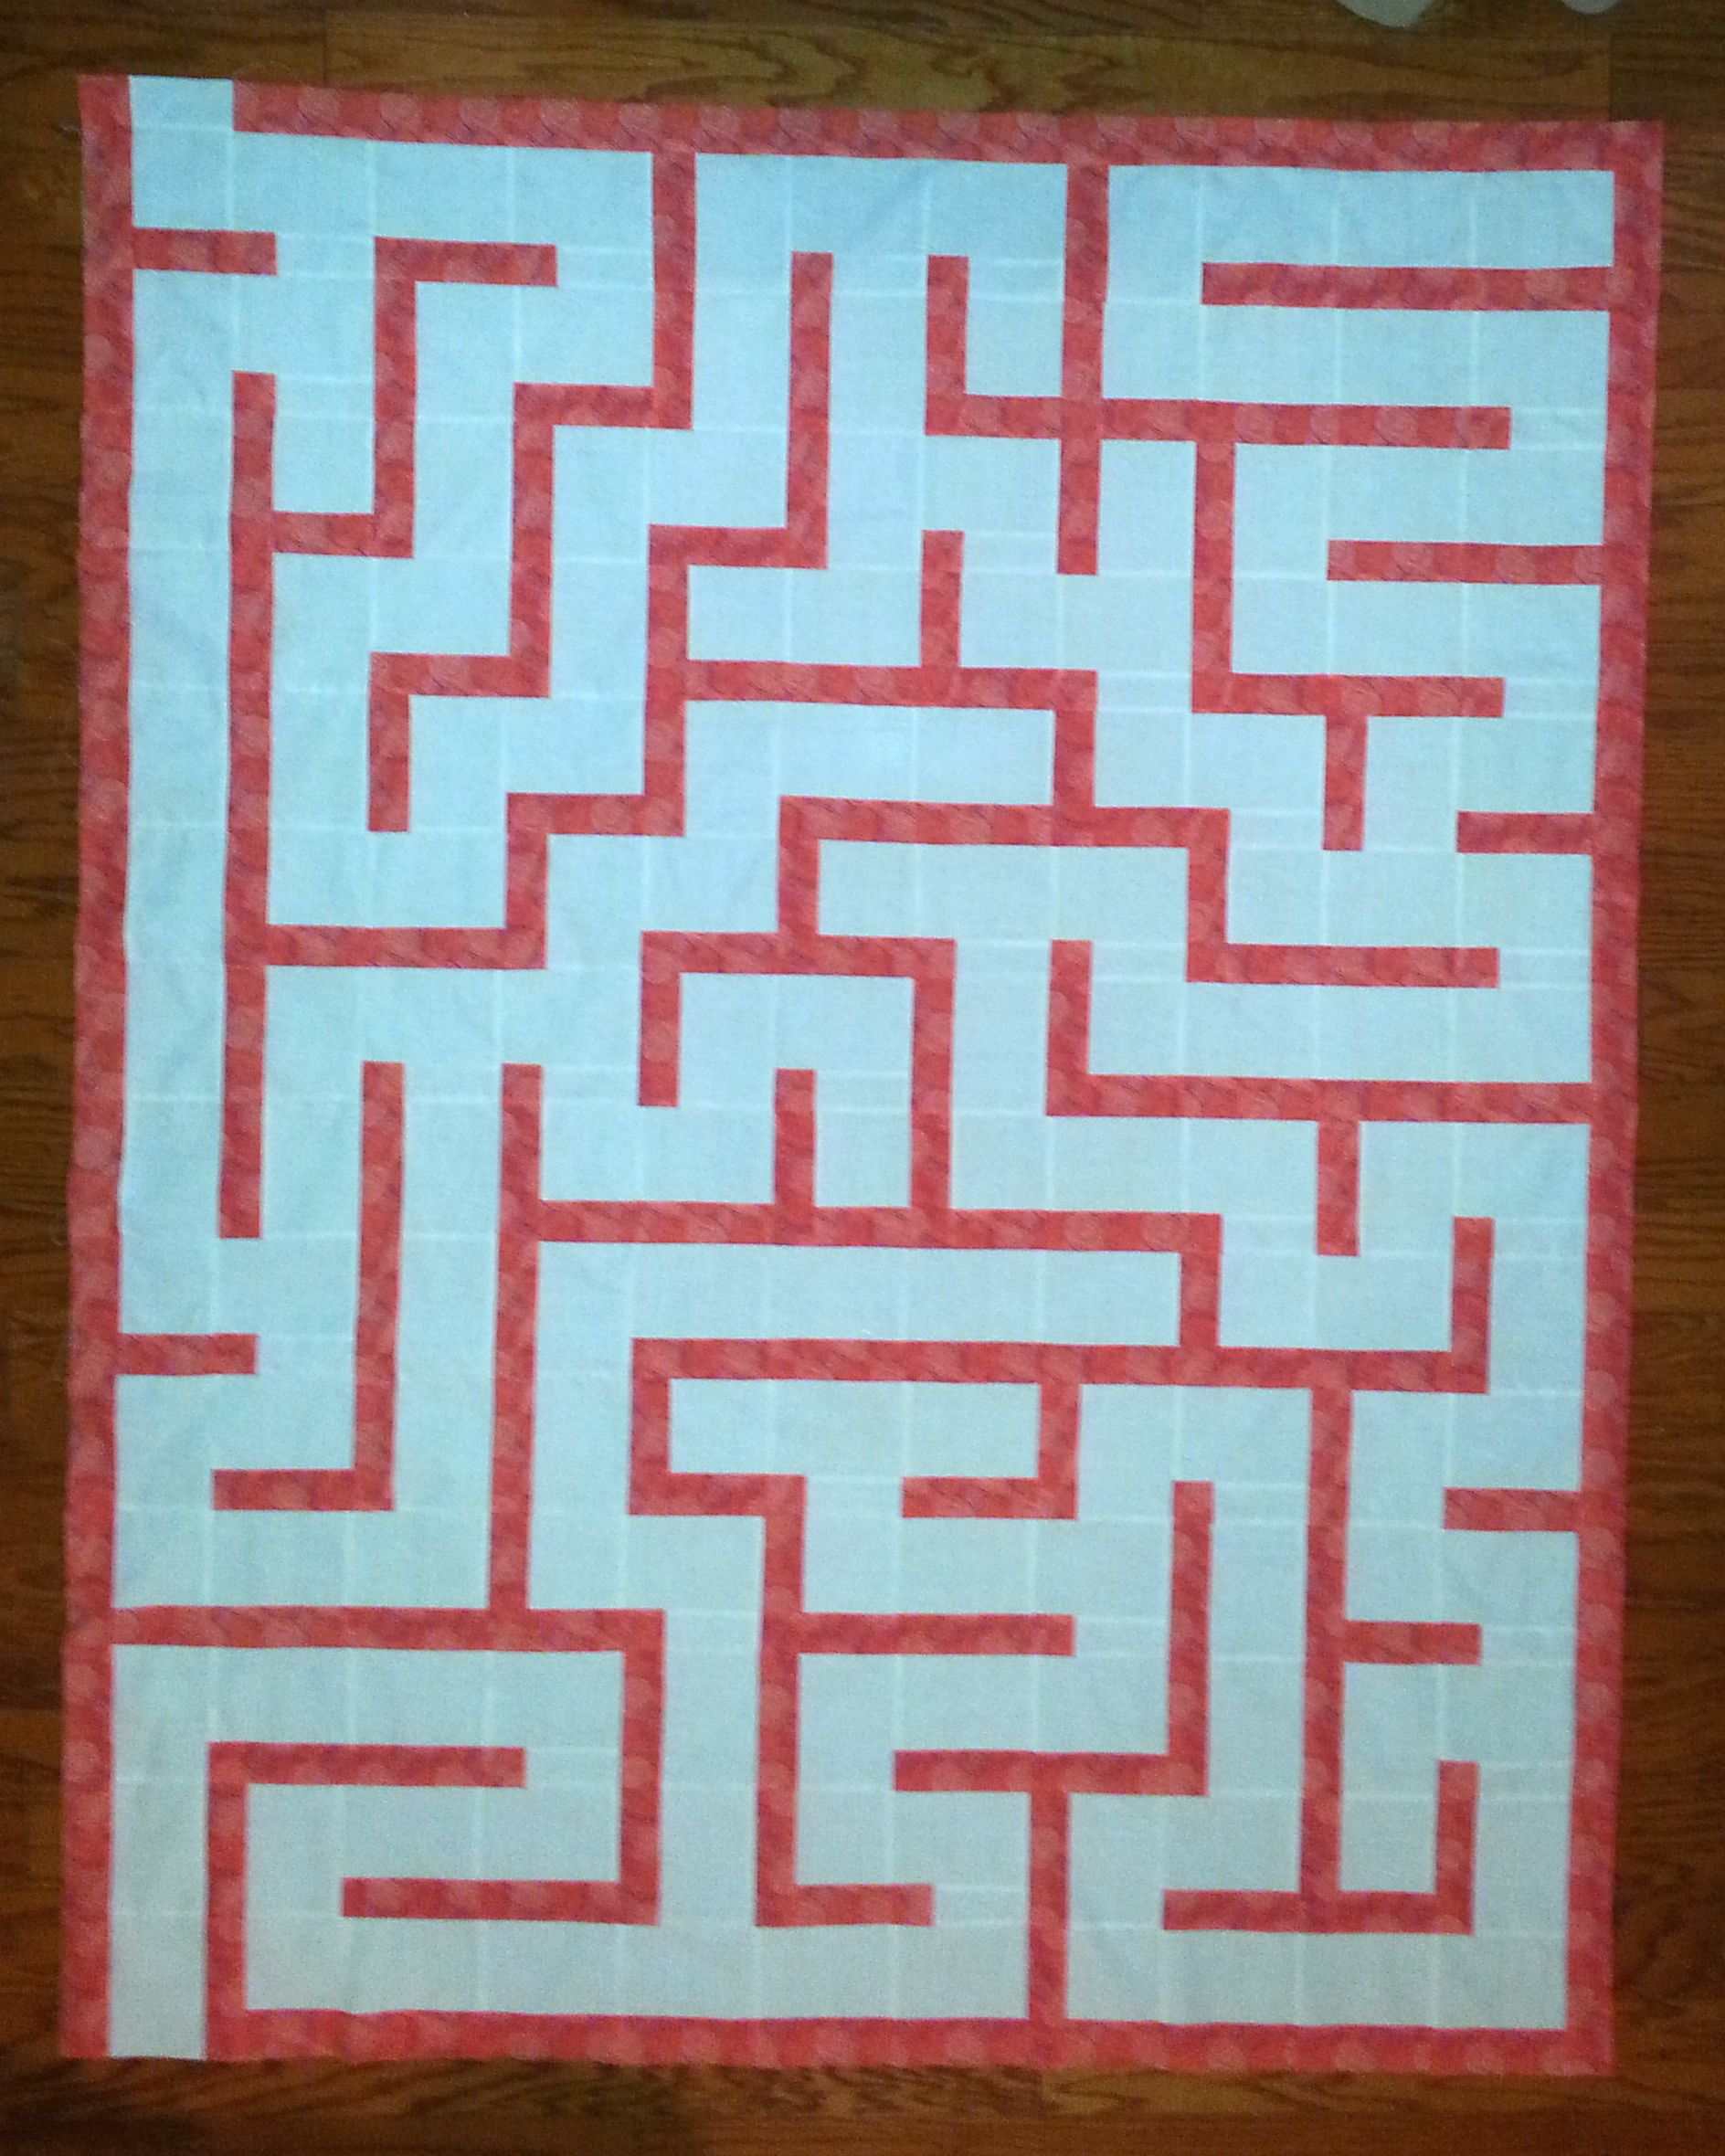 9b26742fe1b Amazement Maze Quilt Pattern by Jaded Spade Creations encourages children  in creative learning play. Easy to follow pattern for beginner quilters.